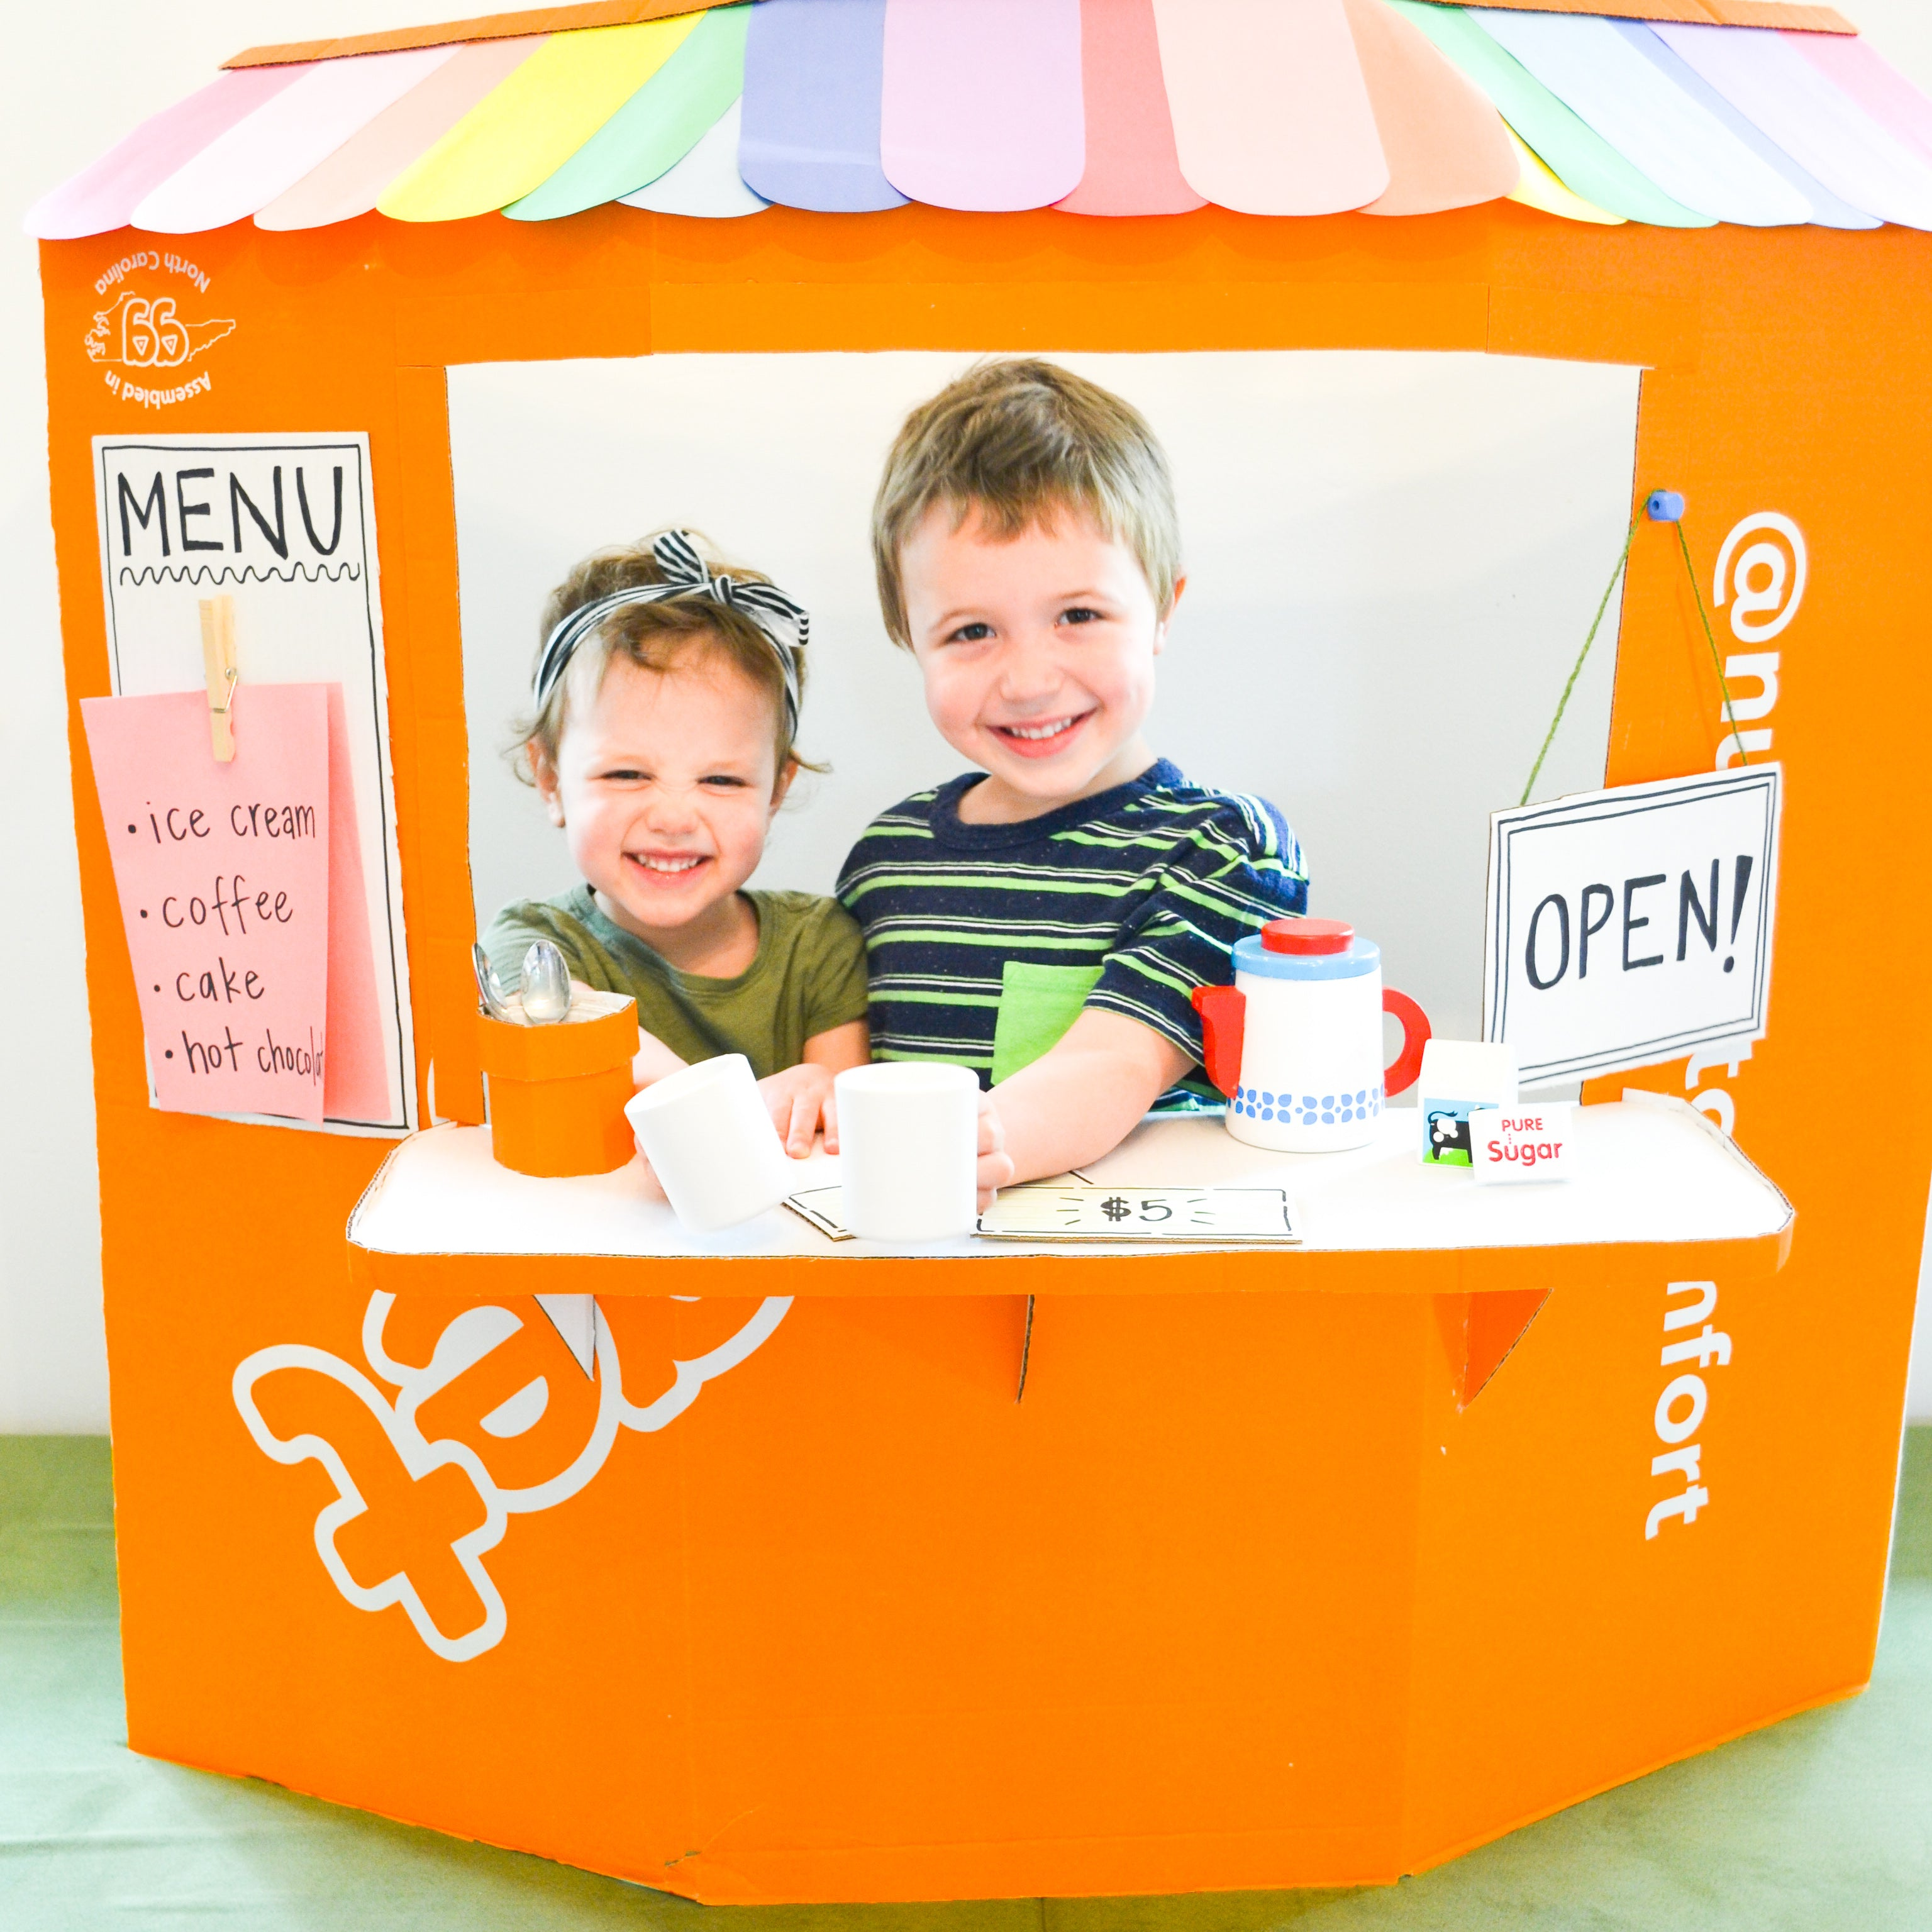 Two children grinning at camera from their play snack stand, made from Nugget Big Orange Box